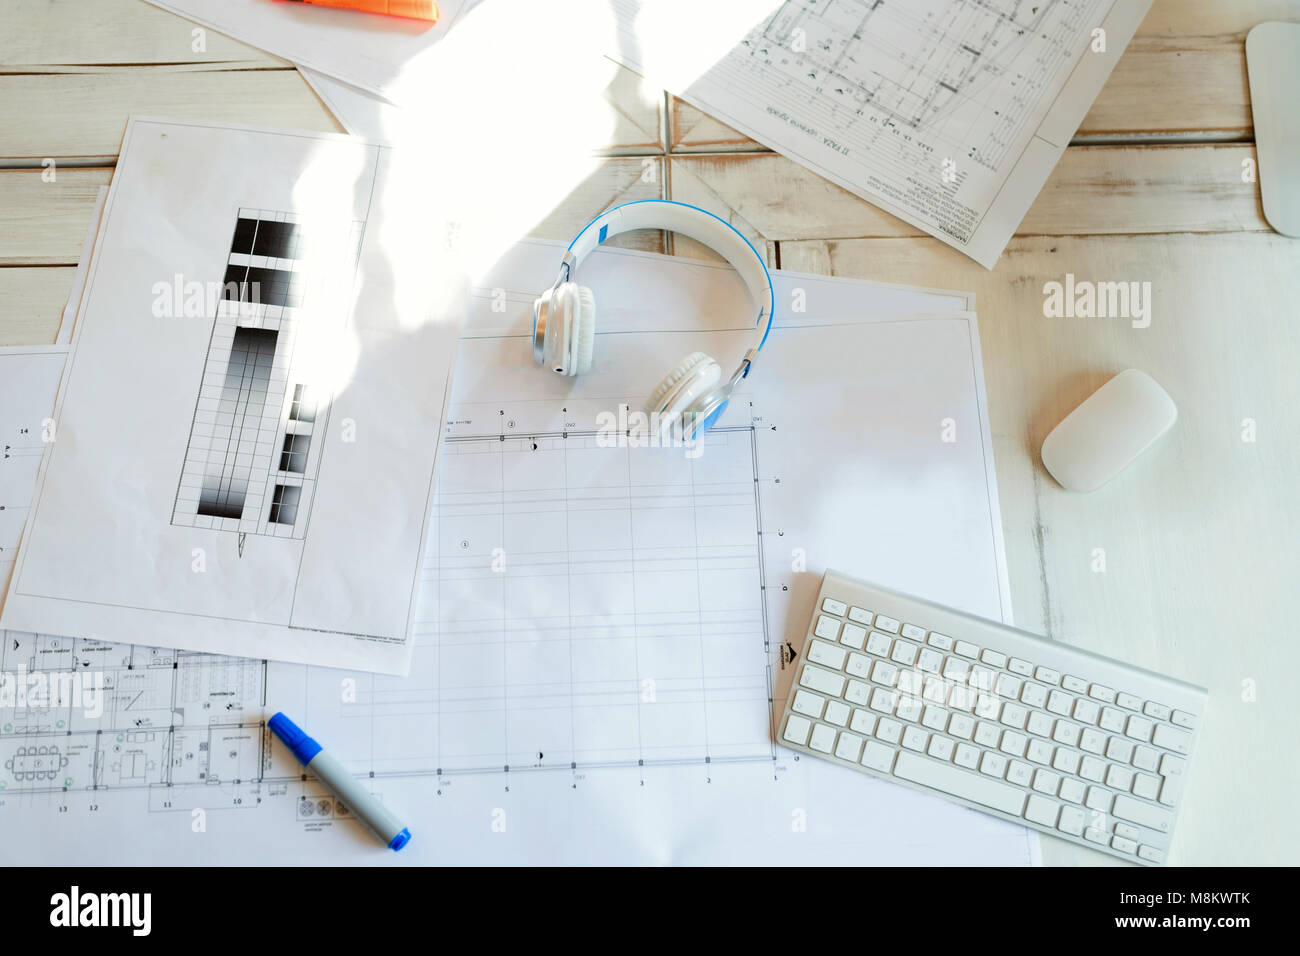 Architectural project, blueprints, blueprint rolls on wooden desk table - Stock Image